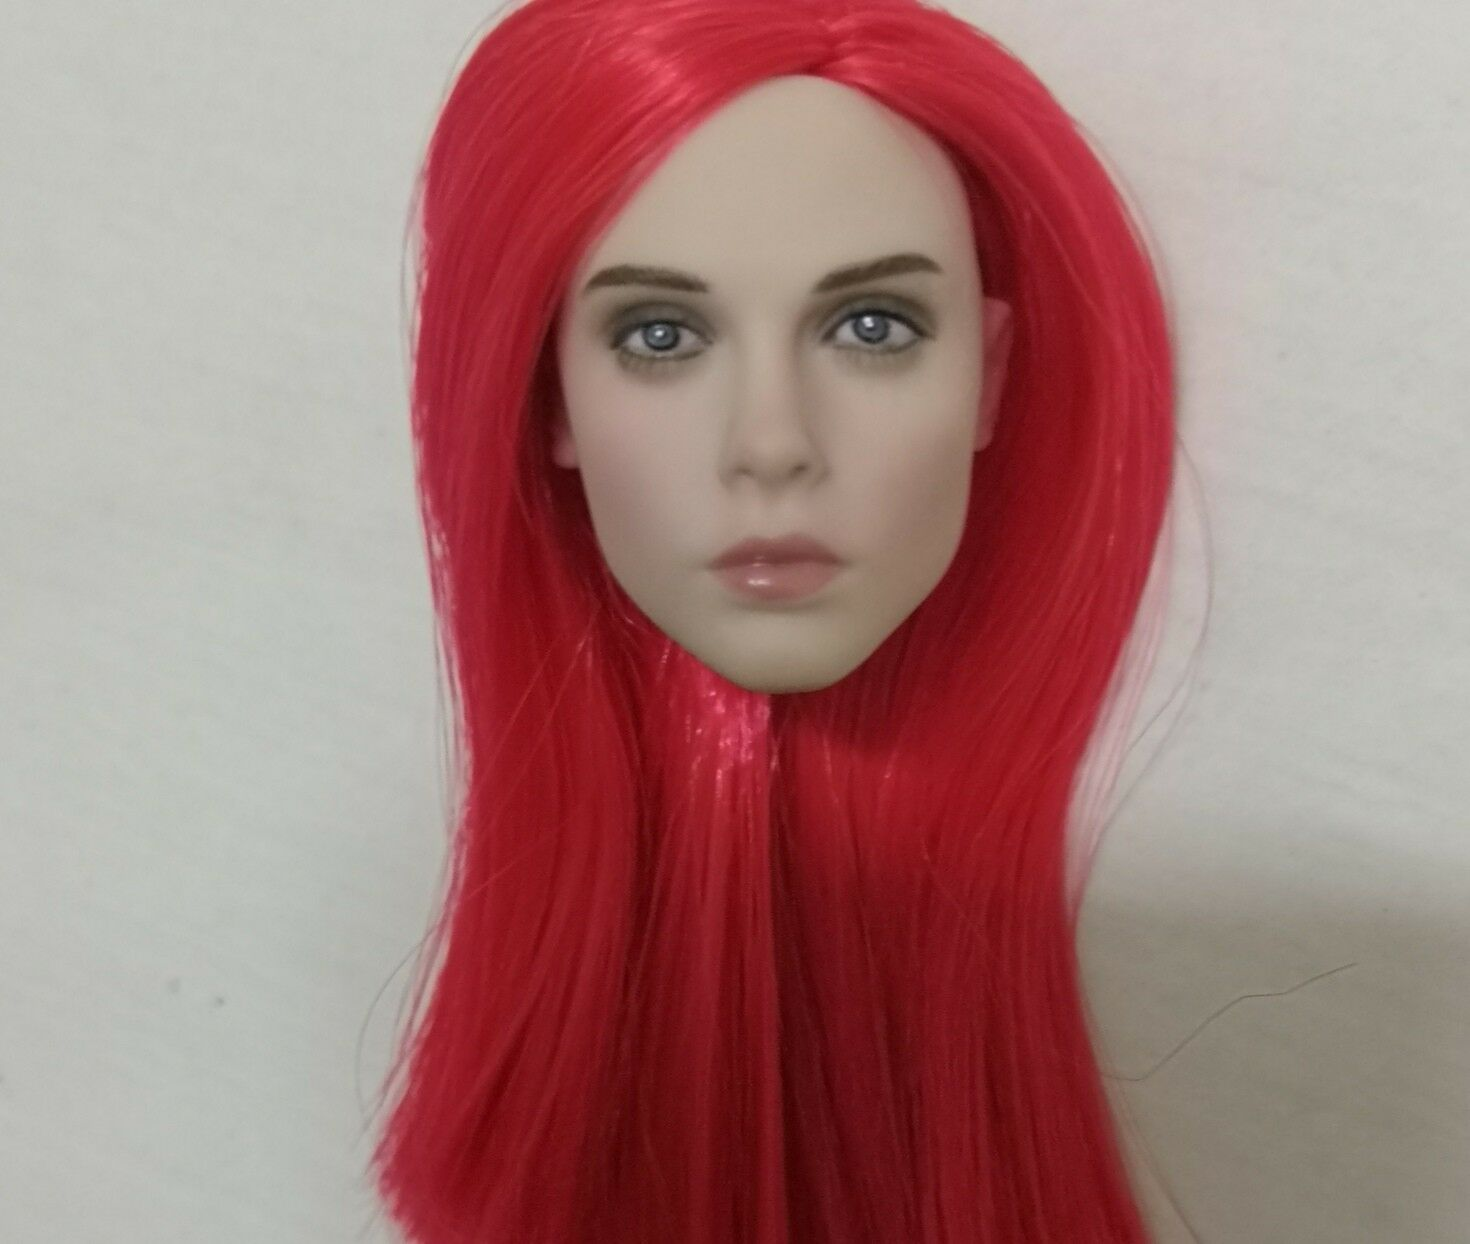 1 6 Female Head Sculpt Head Carving Carving Carving Red Hair Fit 12  Phicen Action Figure Body b32d45